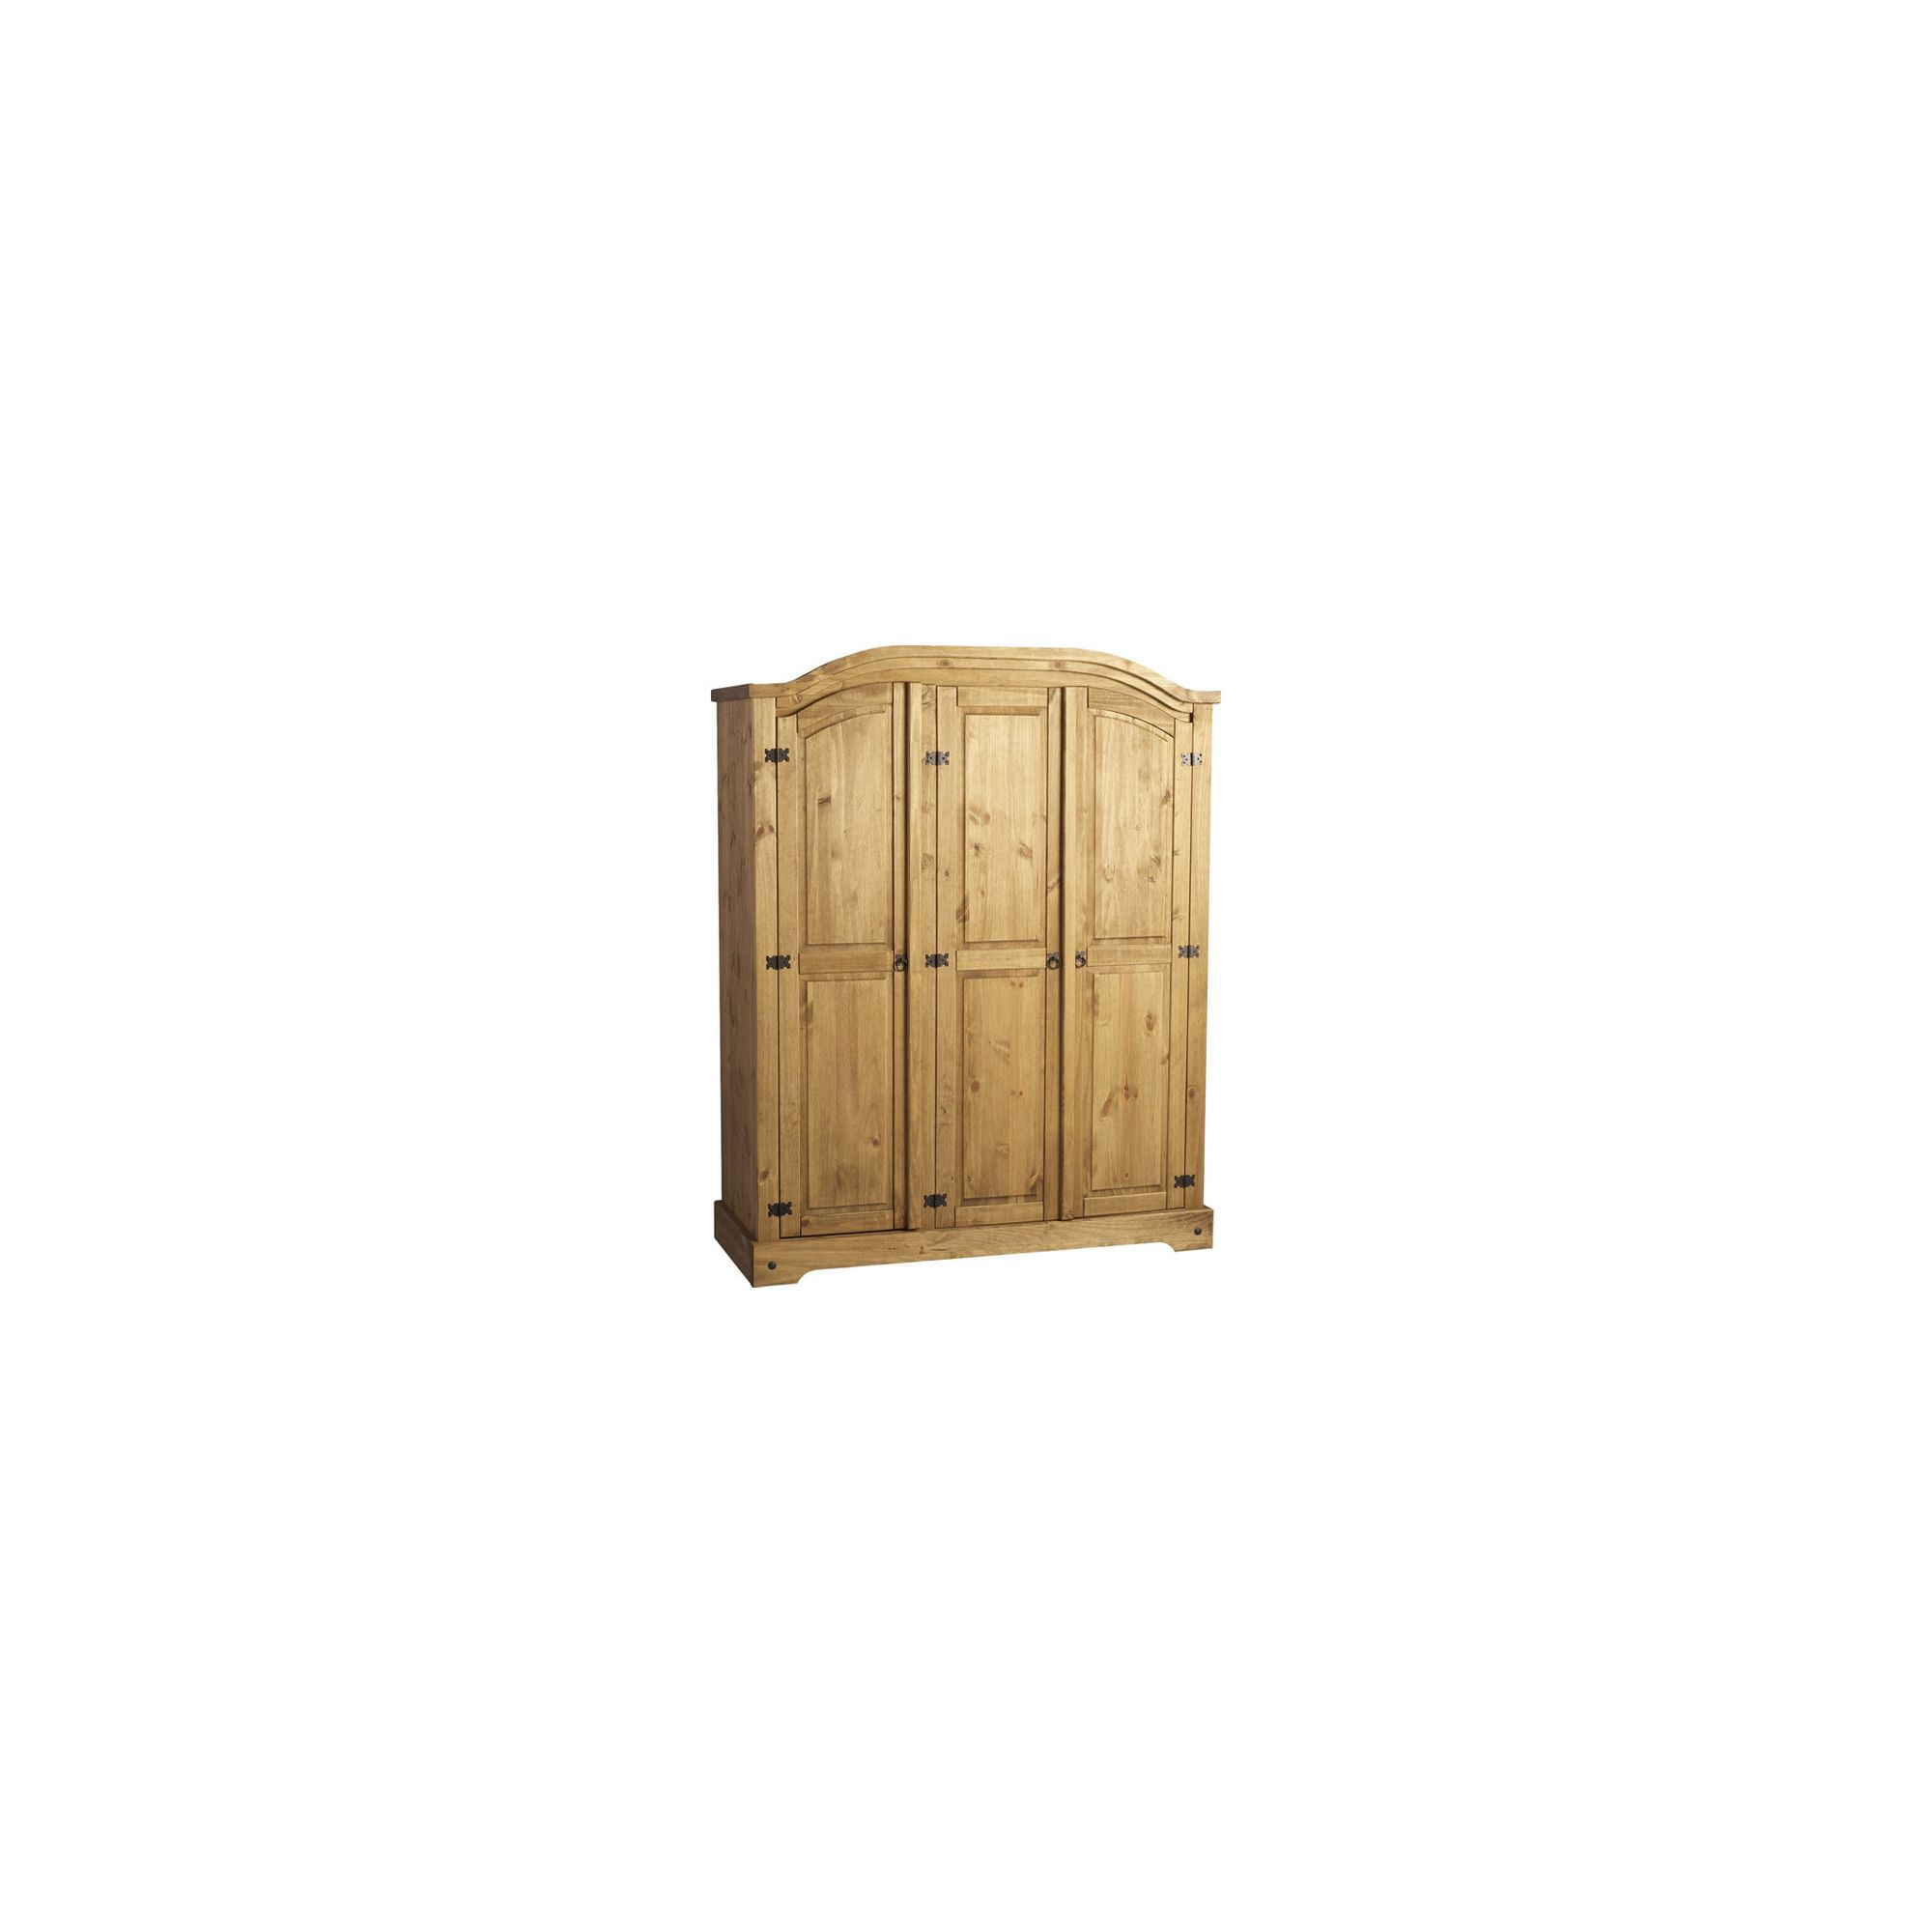 Home Essence Corona Three Door Wardrobe in Distressed Waxed Pine at Tesco Direct